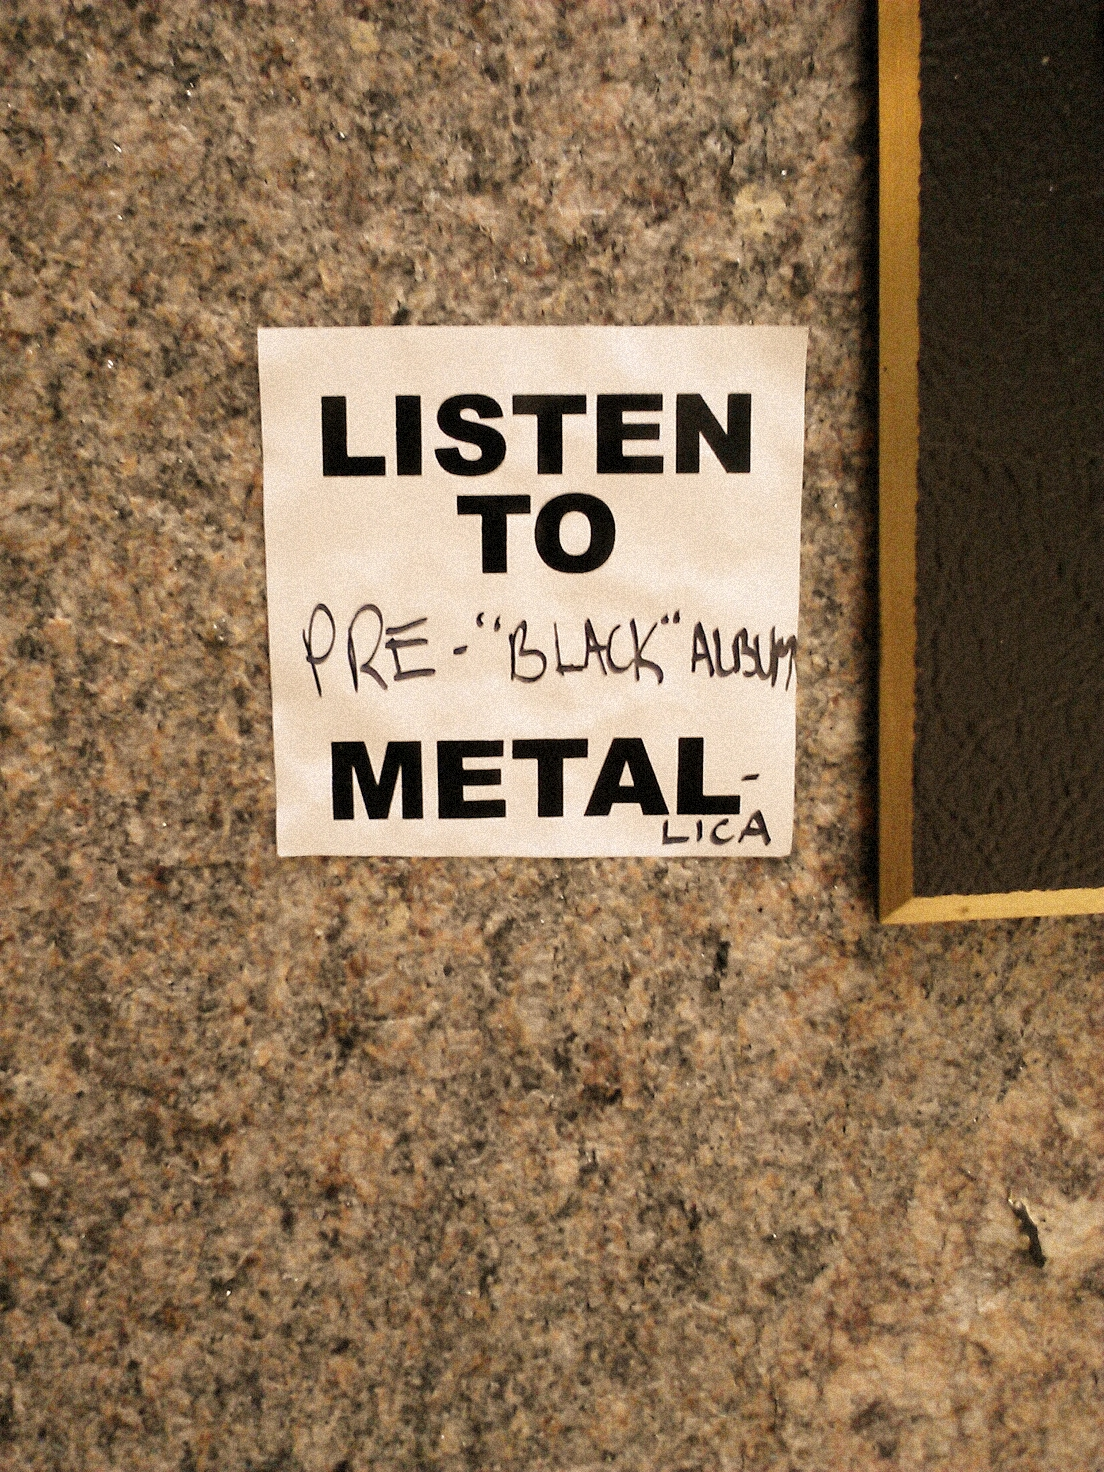 listen_to_metal_sticker4